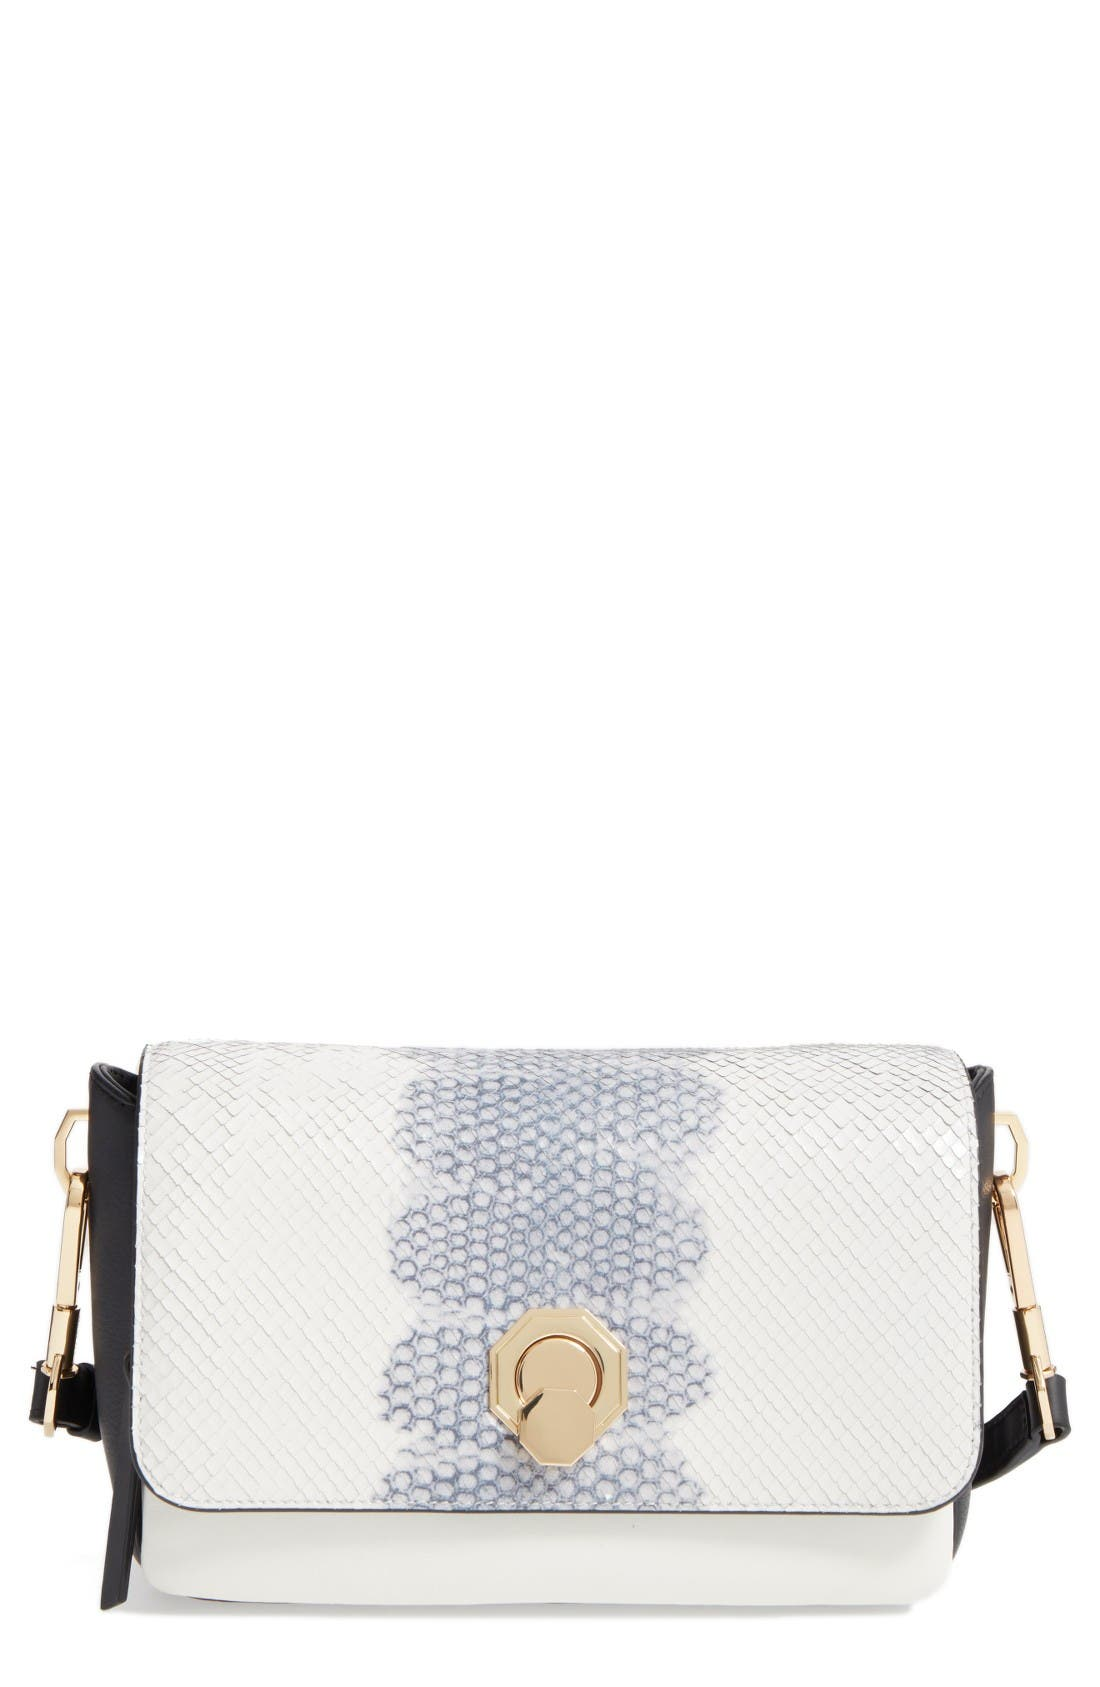 Main Image - Louise et Cie 'Small Alis' Leather Crossbody Bag